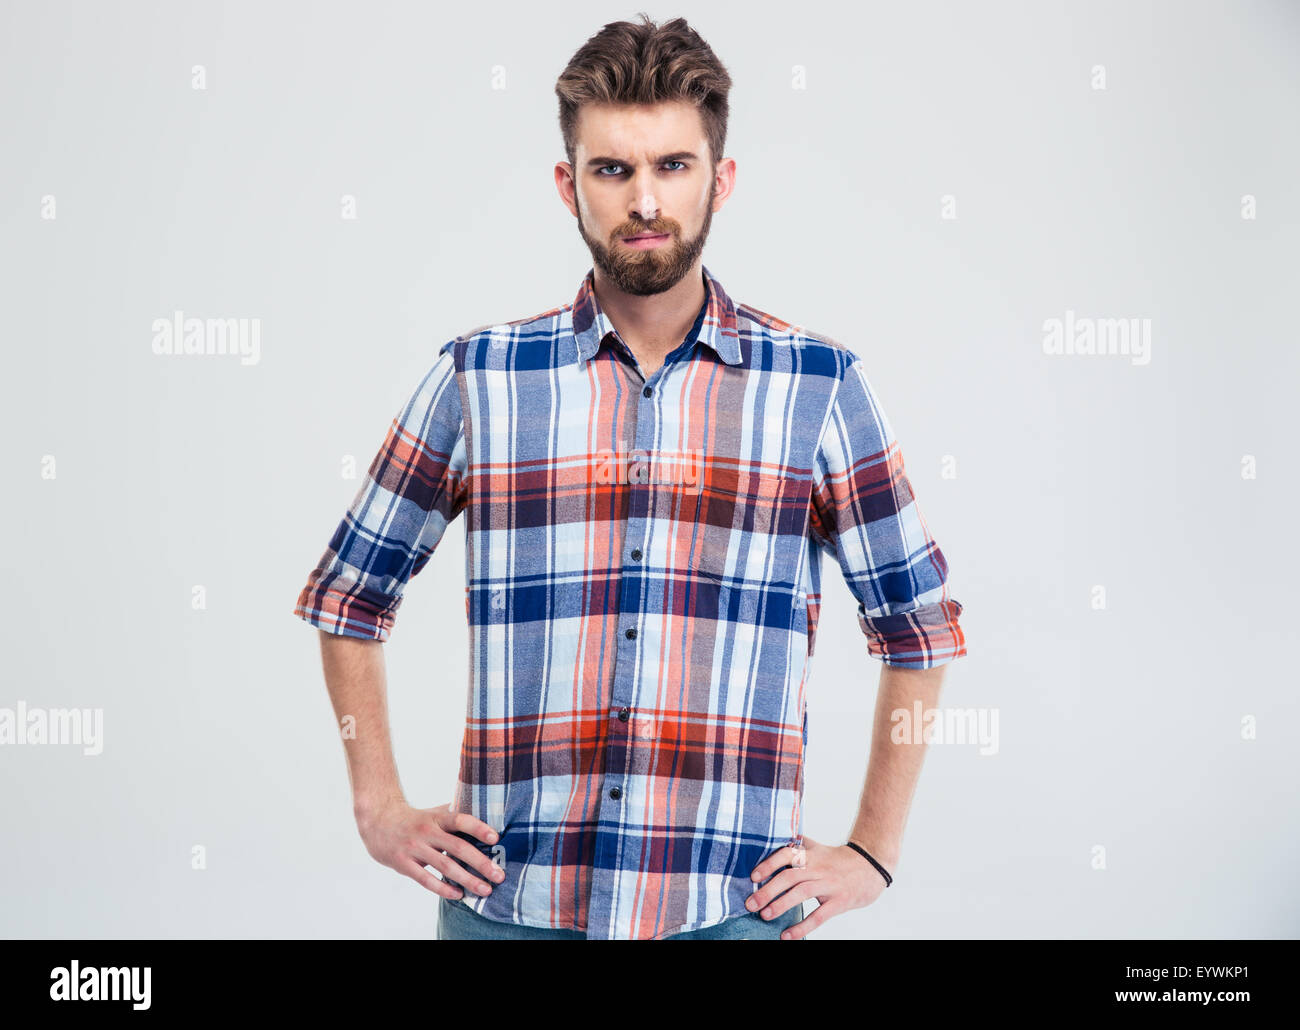 Portrait of a young serious man looking at camera isolated on a white background - Stock Image